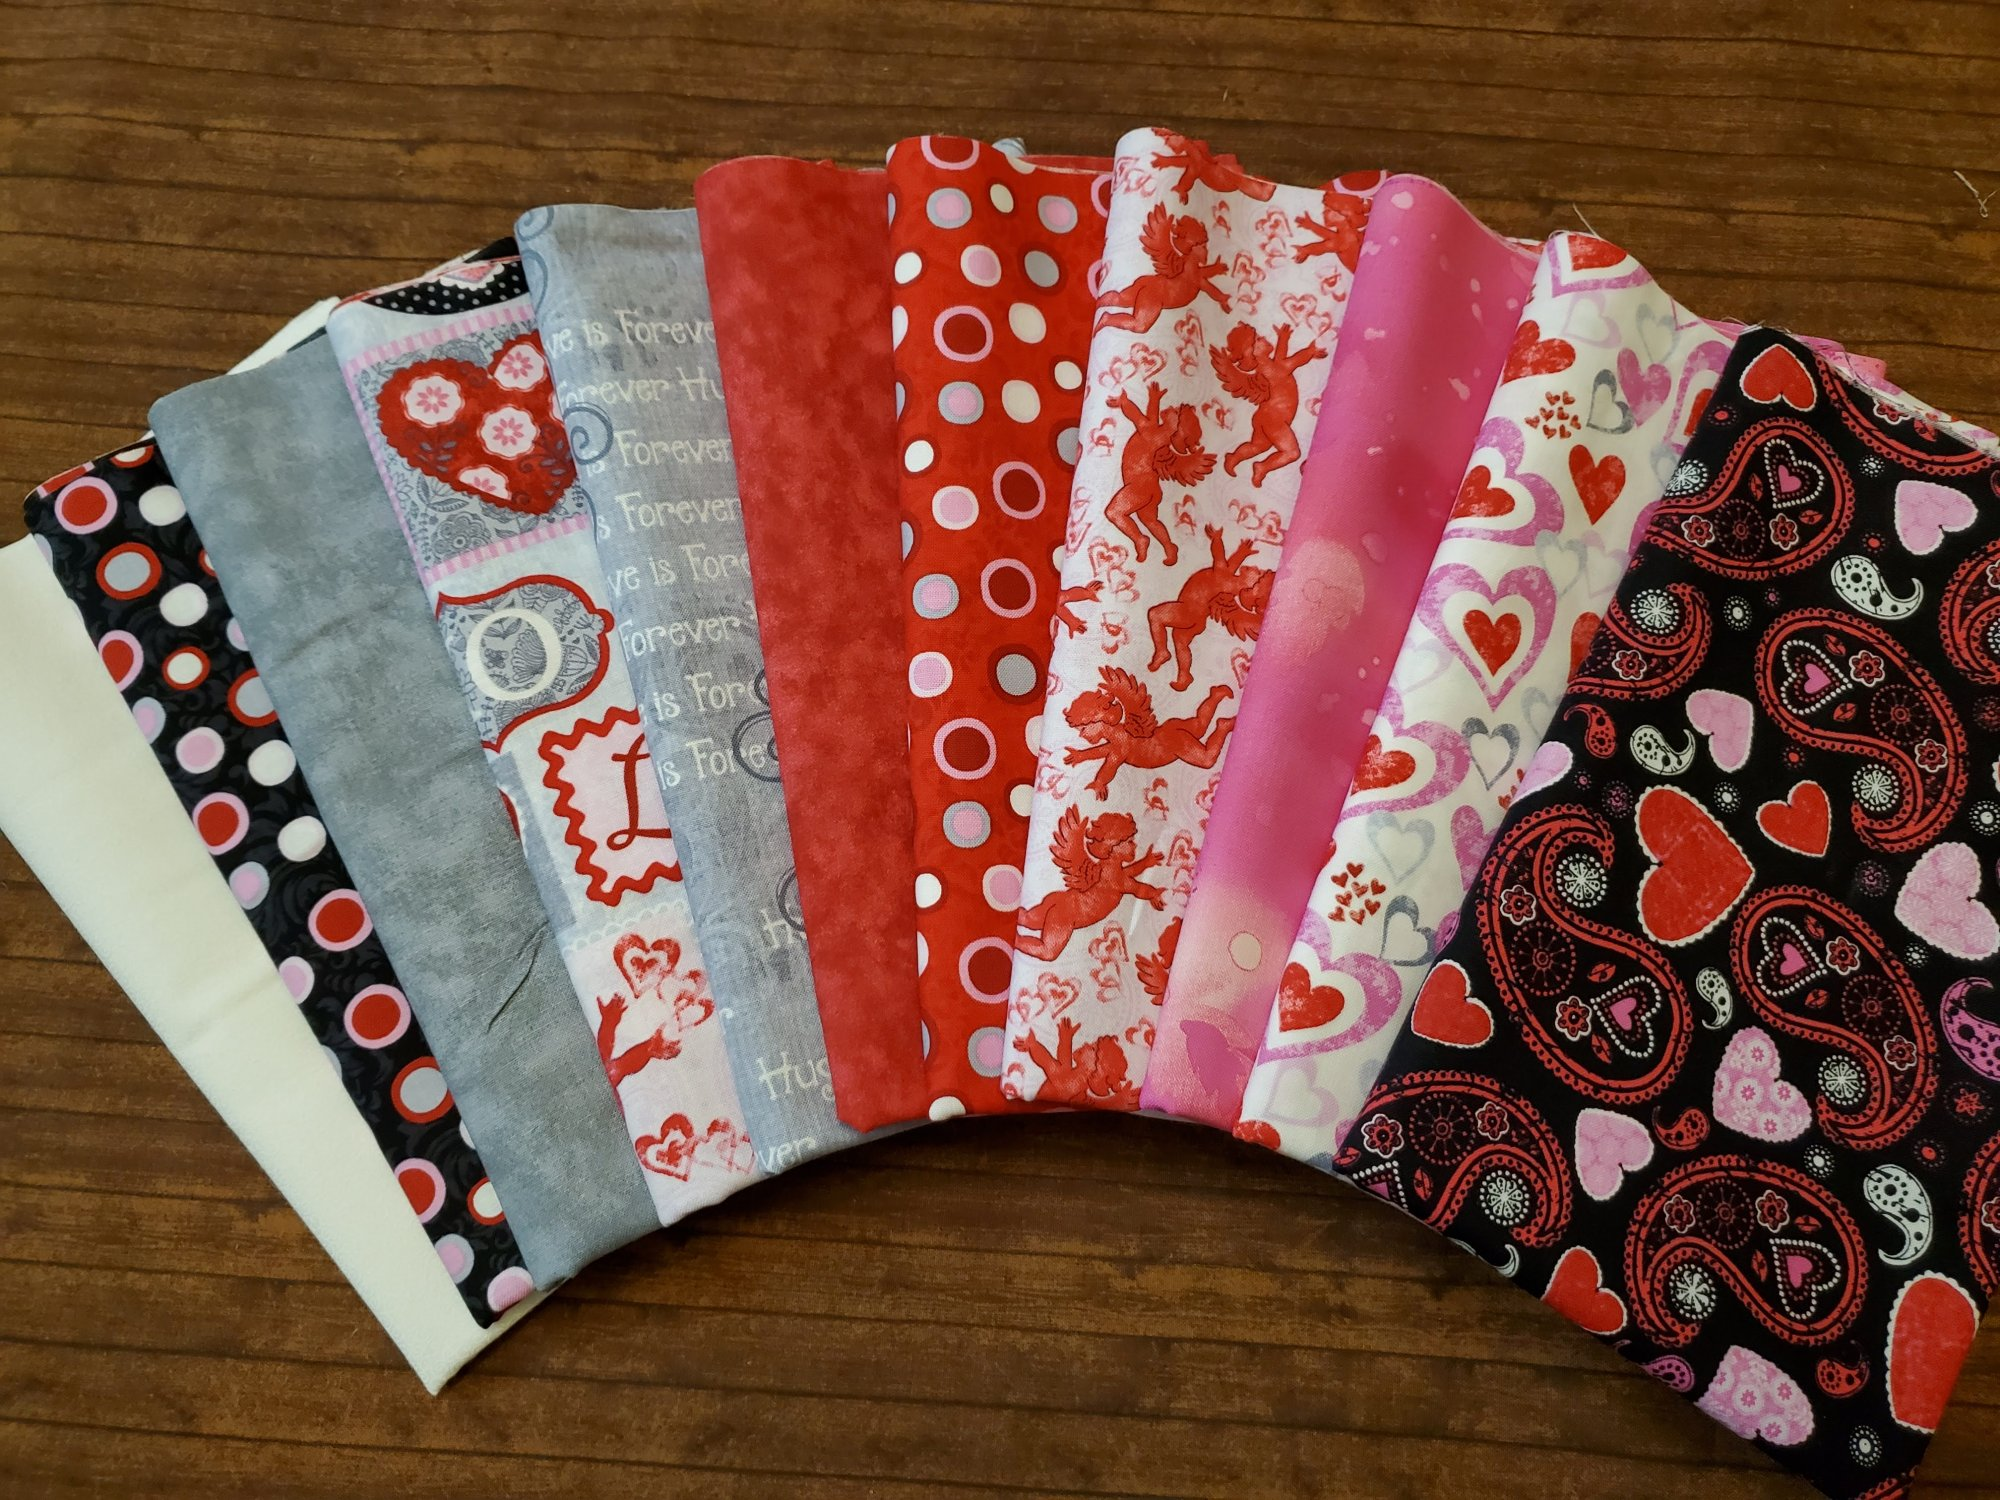 Hearts of Love Valentine Fabric Pack by Sharla Fults for Studio E - 11 Piece Half Yard Bundle Pack